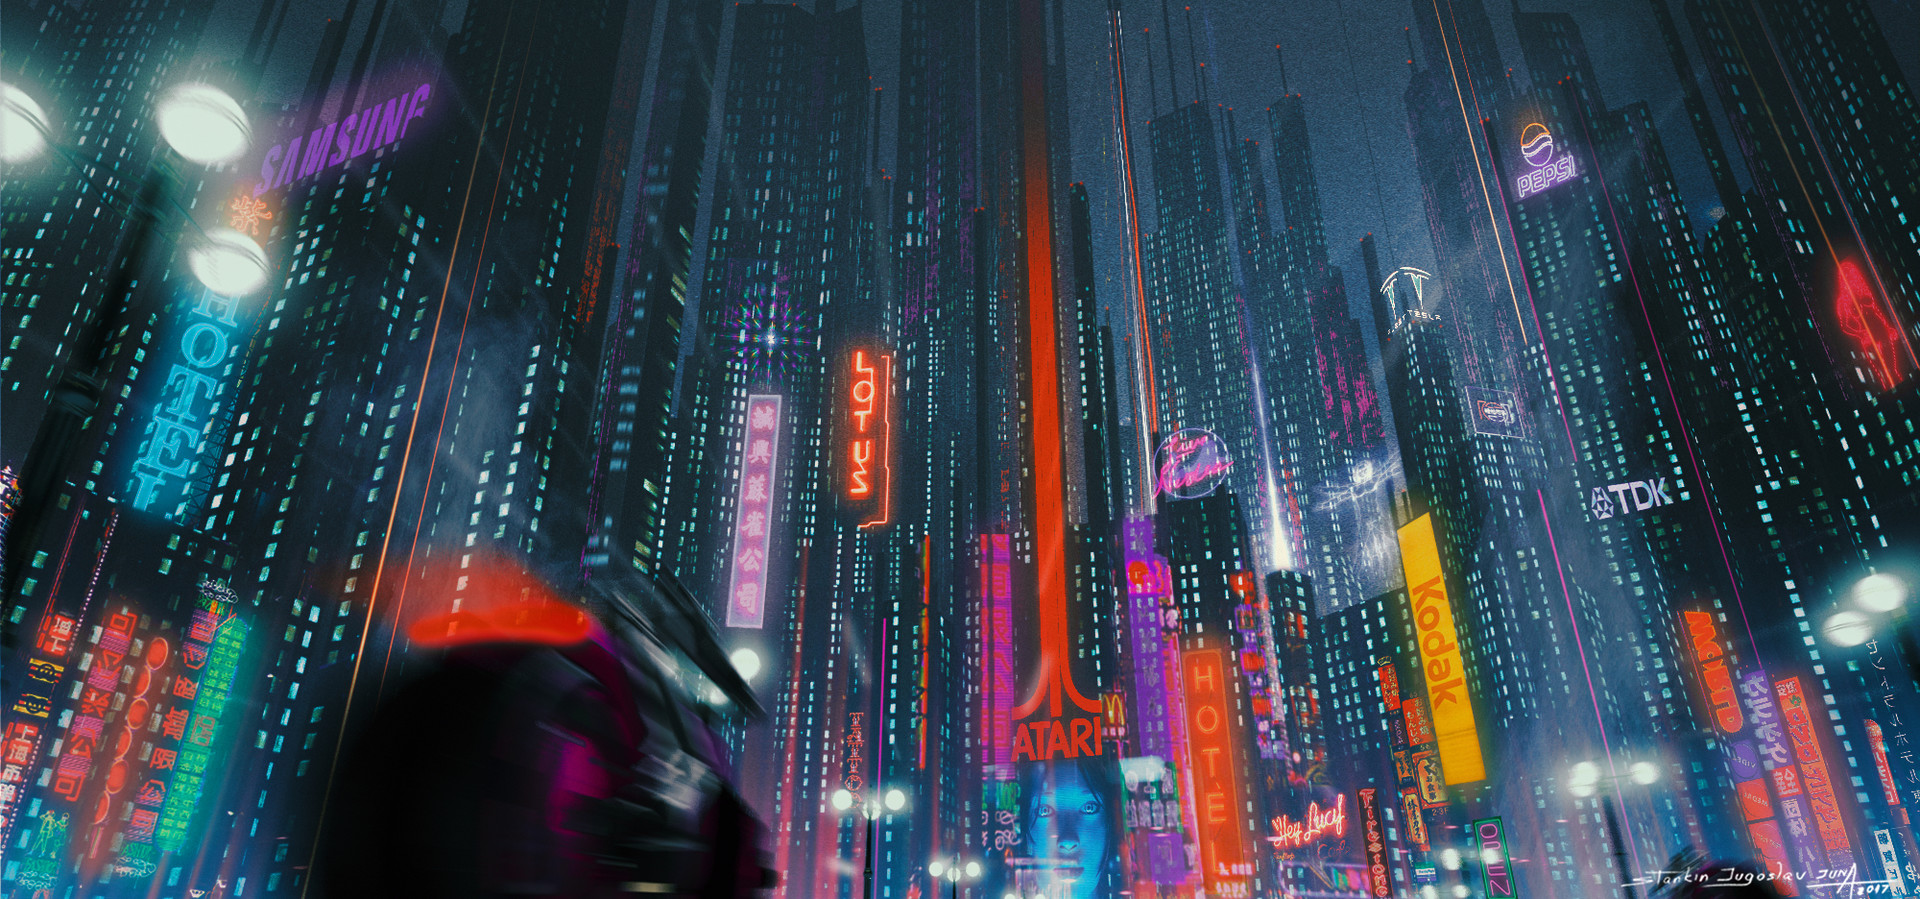 New retro wave-ish city